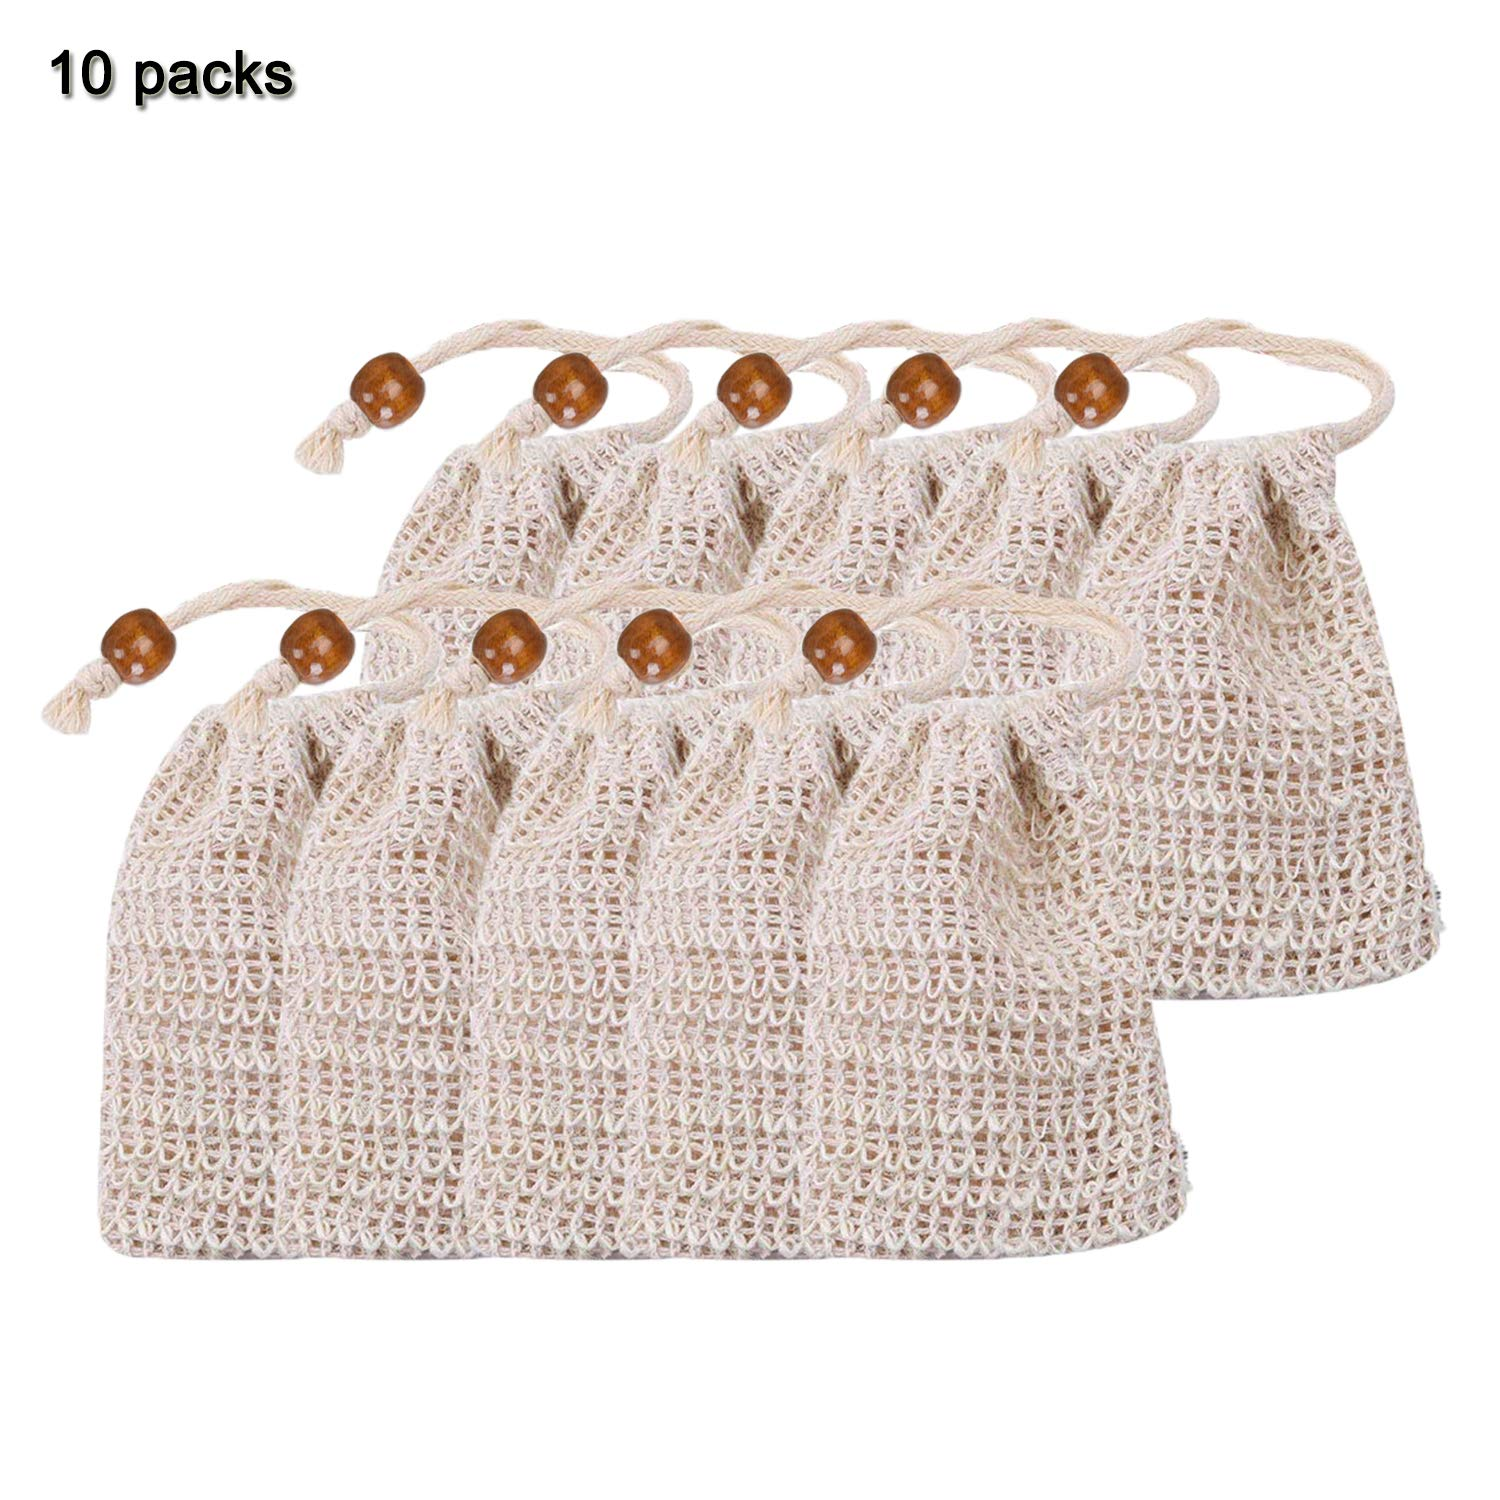 NARUTOO Exfoliating Natural Sisal Soap Bag Pouch Soap Saver(10 Pcs Sisal Soap Bag)